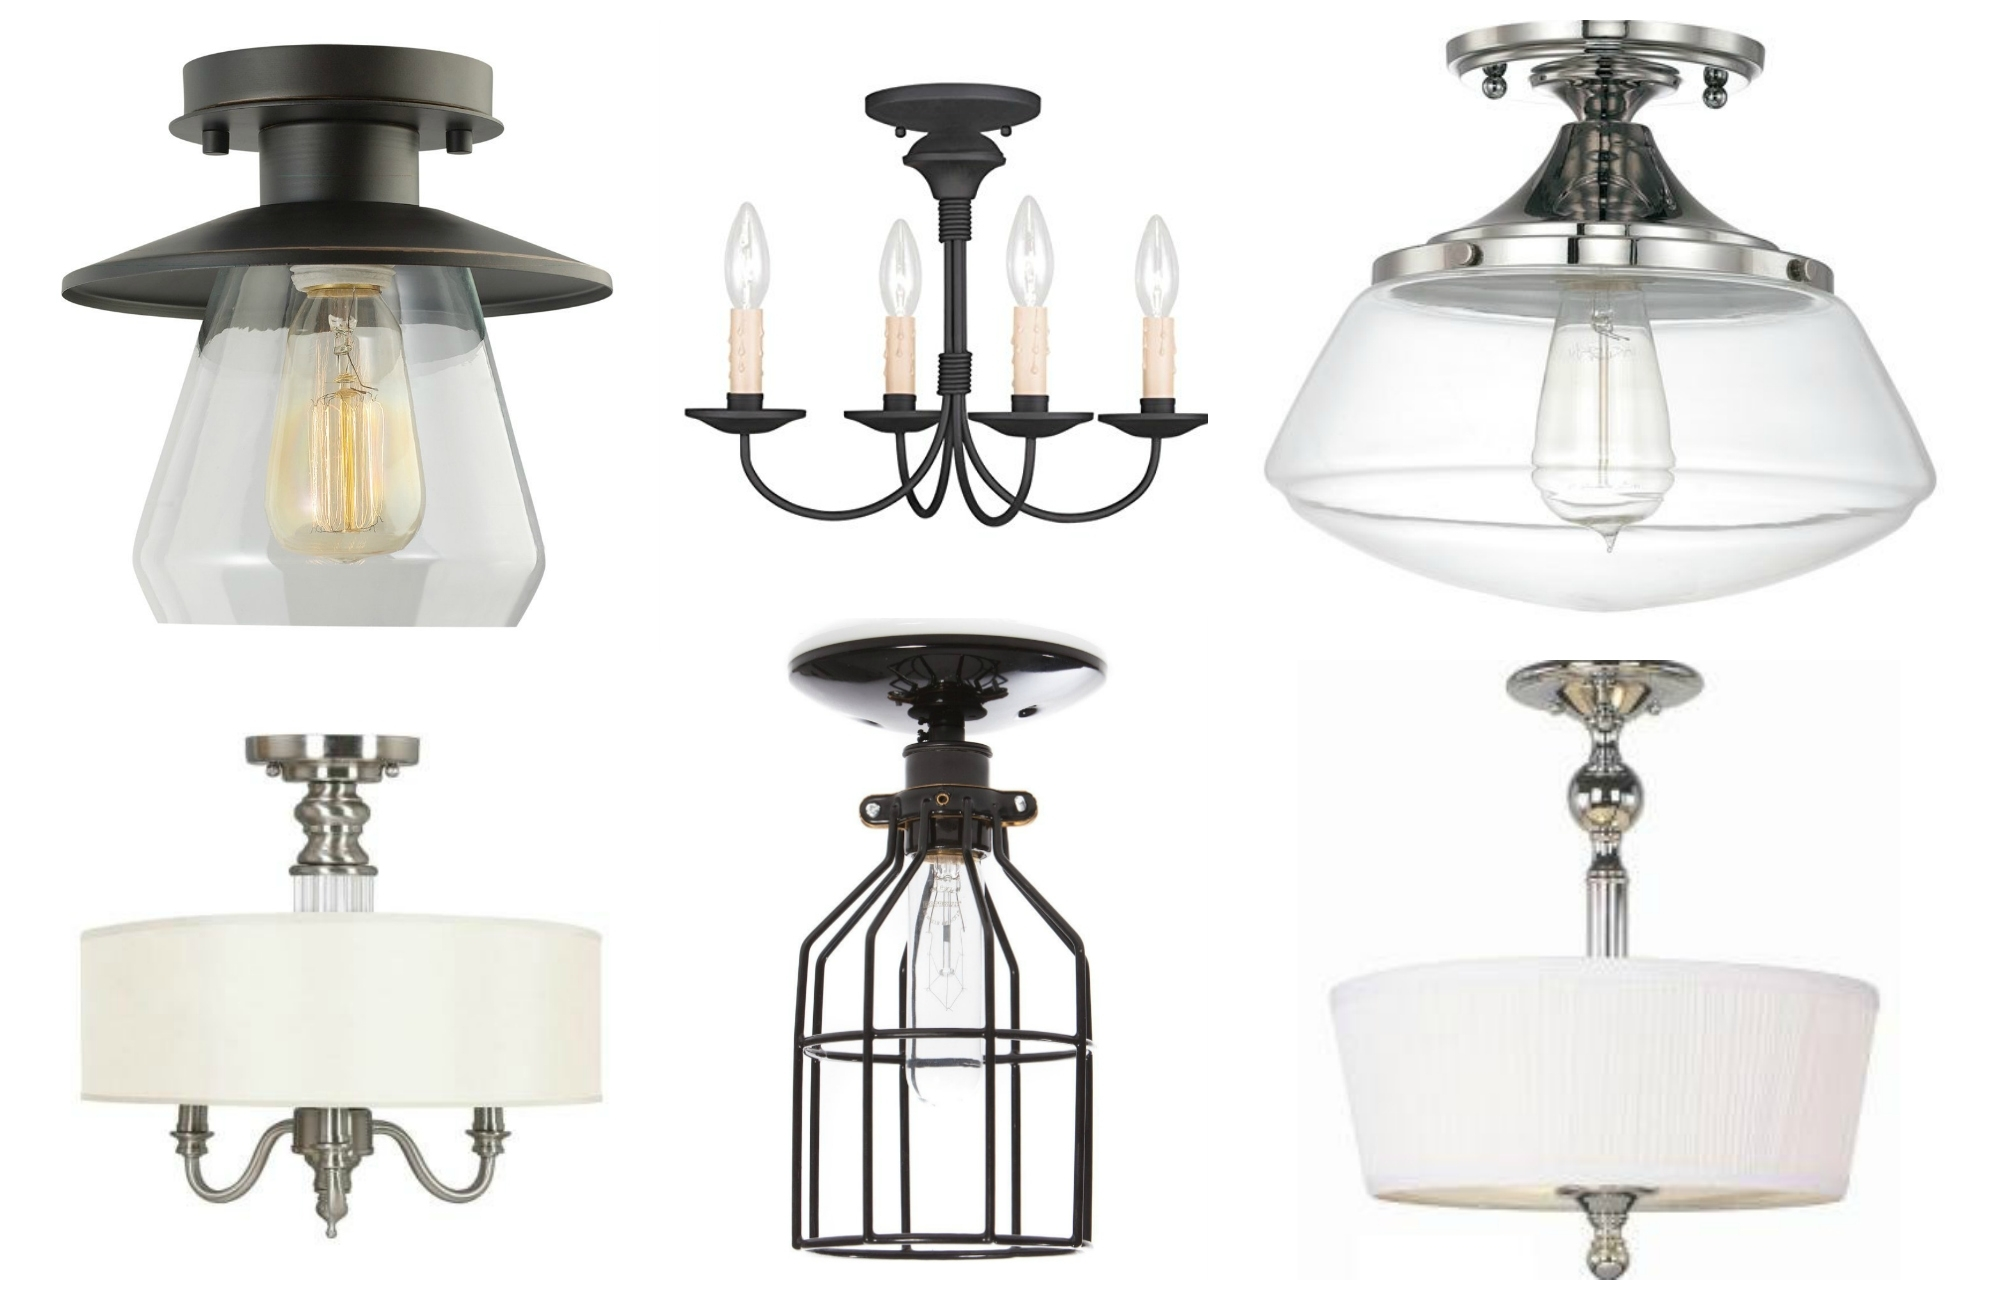 Current Small Chandeliers For Low Ceilings Pertaining To These Gorgeous High Style Ceiling Lights Will Dress Up A Low Ceiling (View 14 of 20)